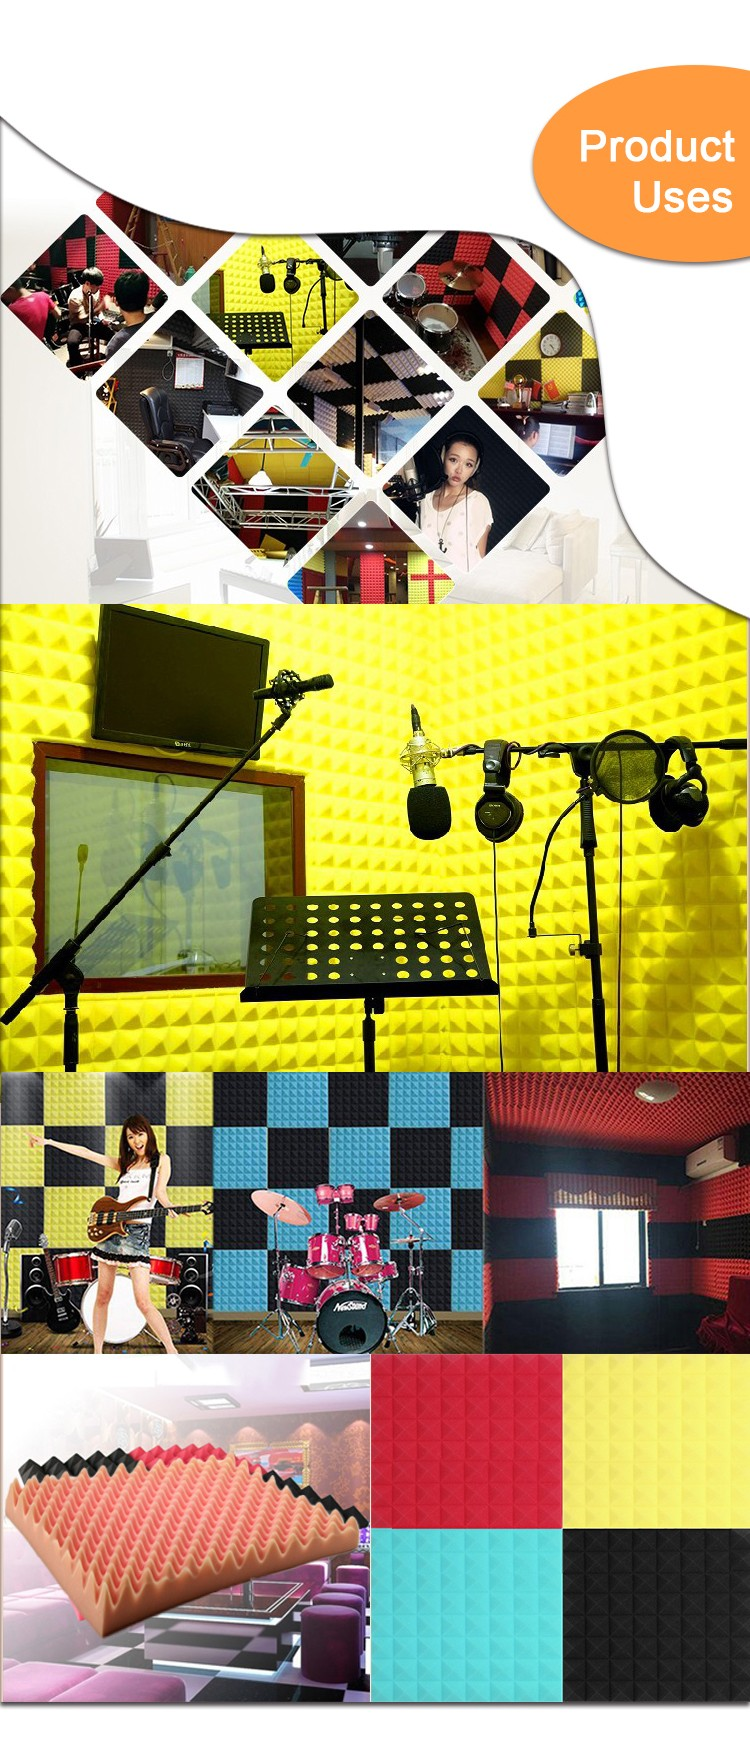 Roll Sound Proofing Insulation Absorbing Sponge Wall Wedges Studio ...